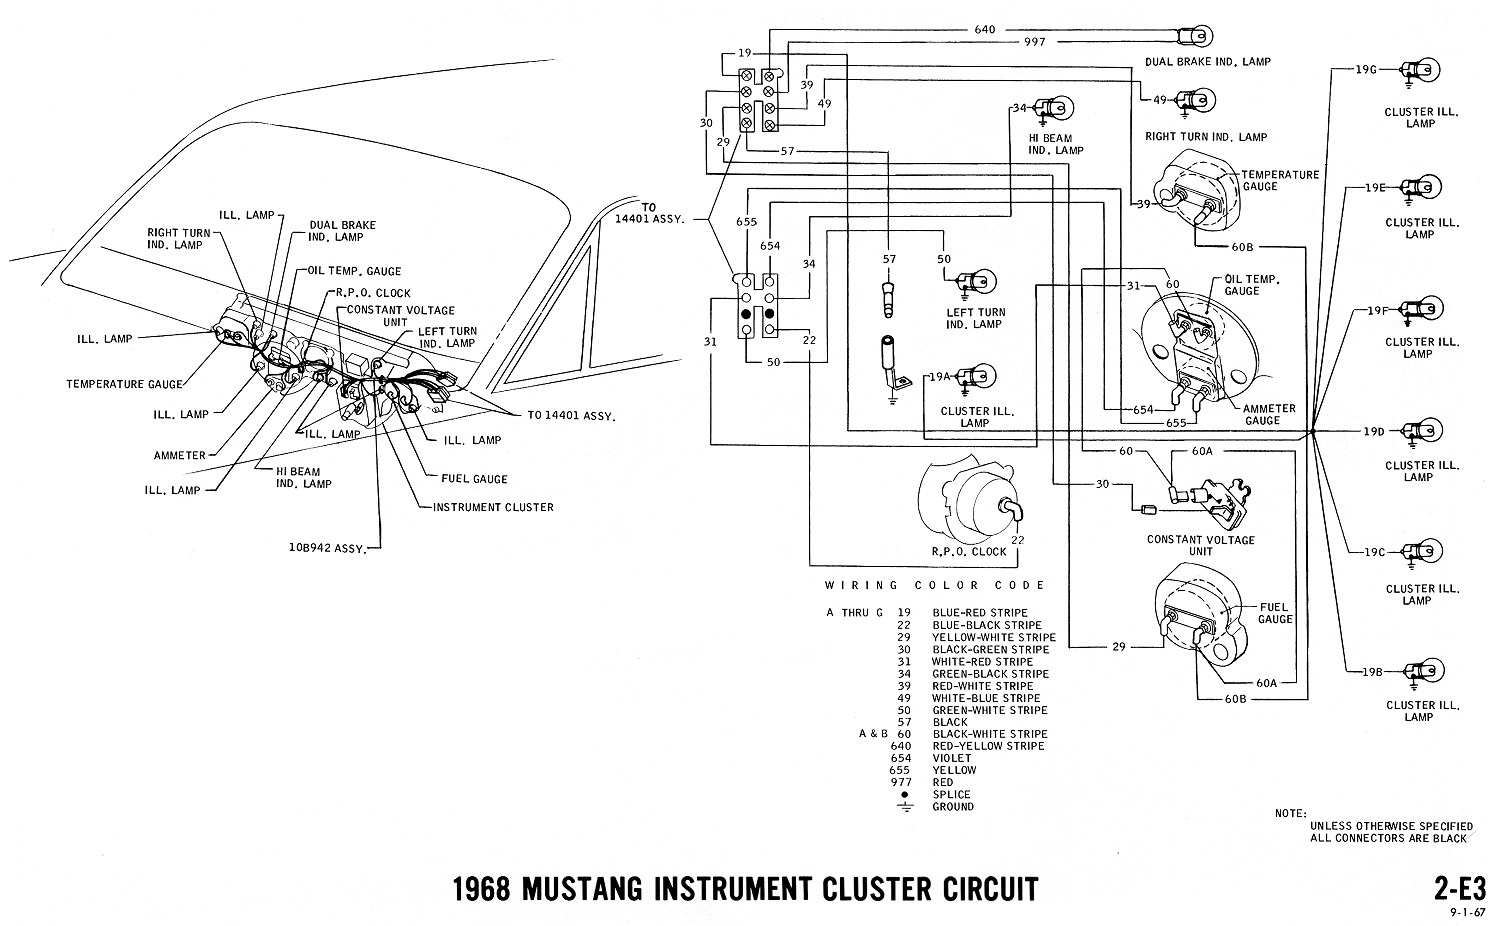 Schematics h additionally 1964 Mustang Wiring Diagrams furthermore 1966 Mustang Wiring Diagrams also 1965 Mustang Accesories Diagram 65 1955 Ford Fuse Box additionally Gm Steering Column Wiring Diagram. on 65 mustang ignition switch wiring diagram